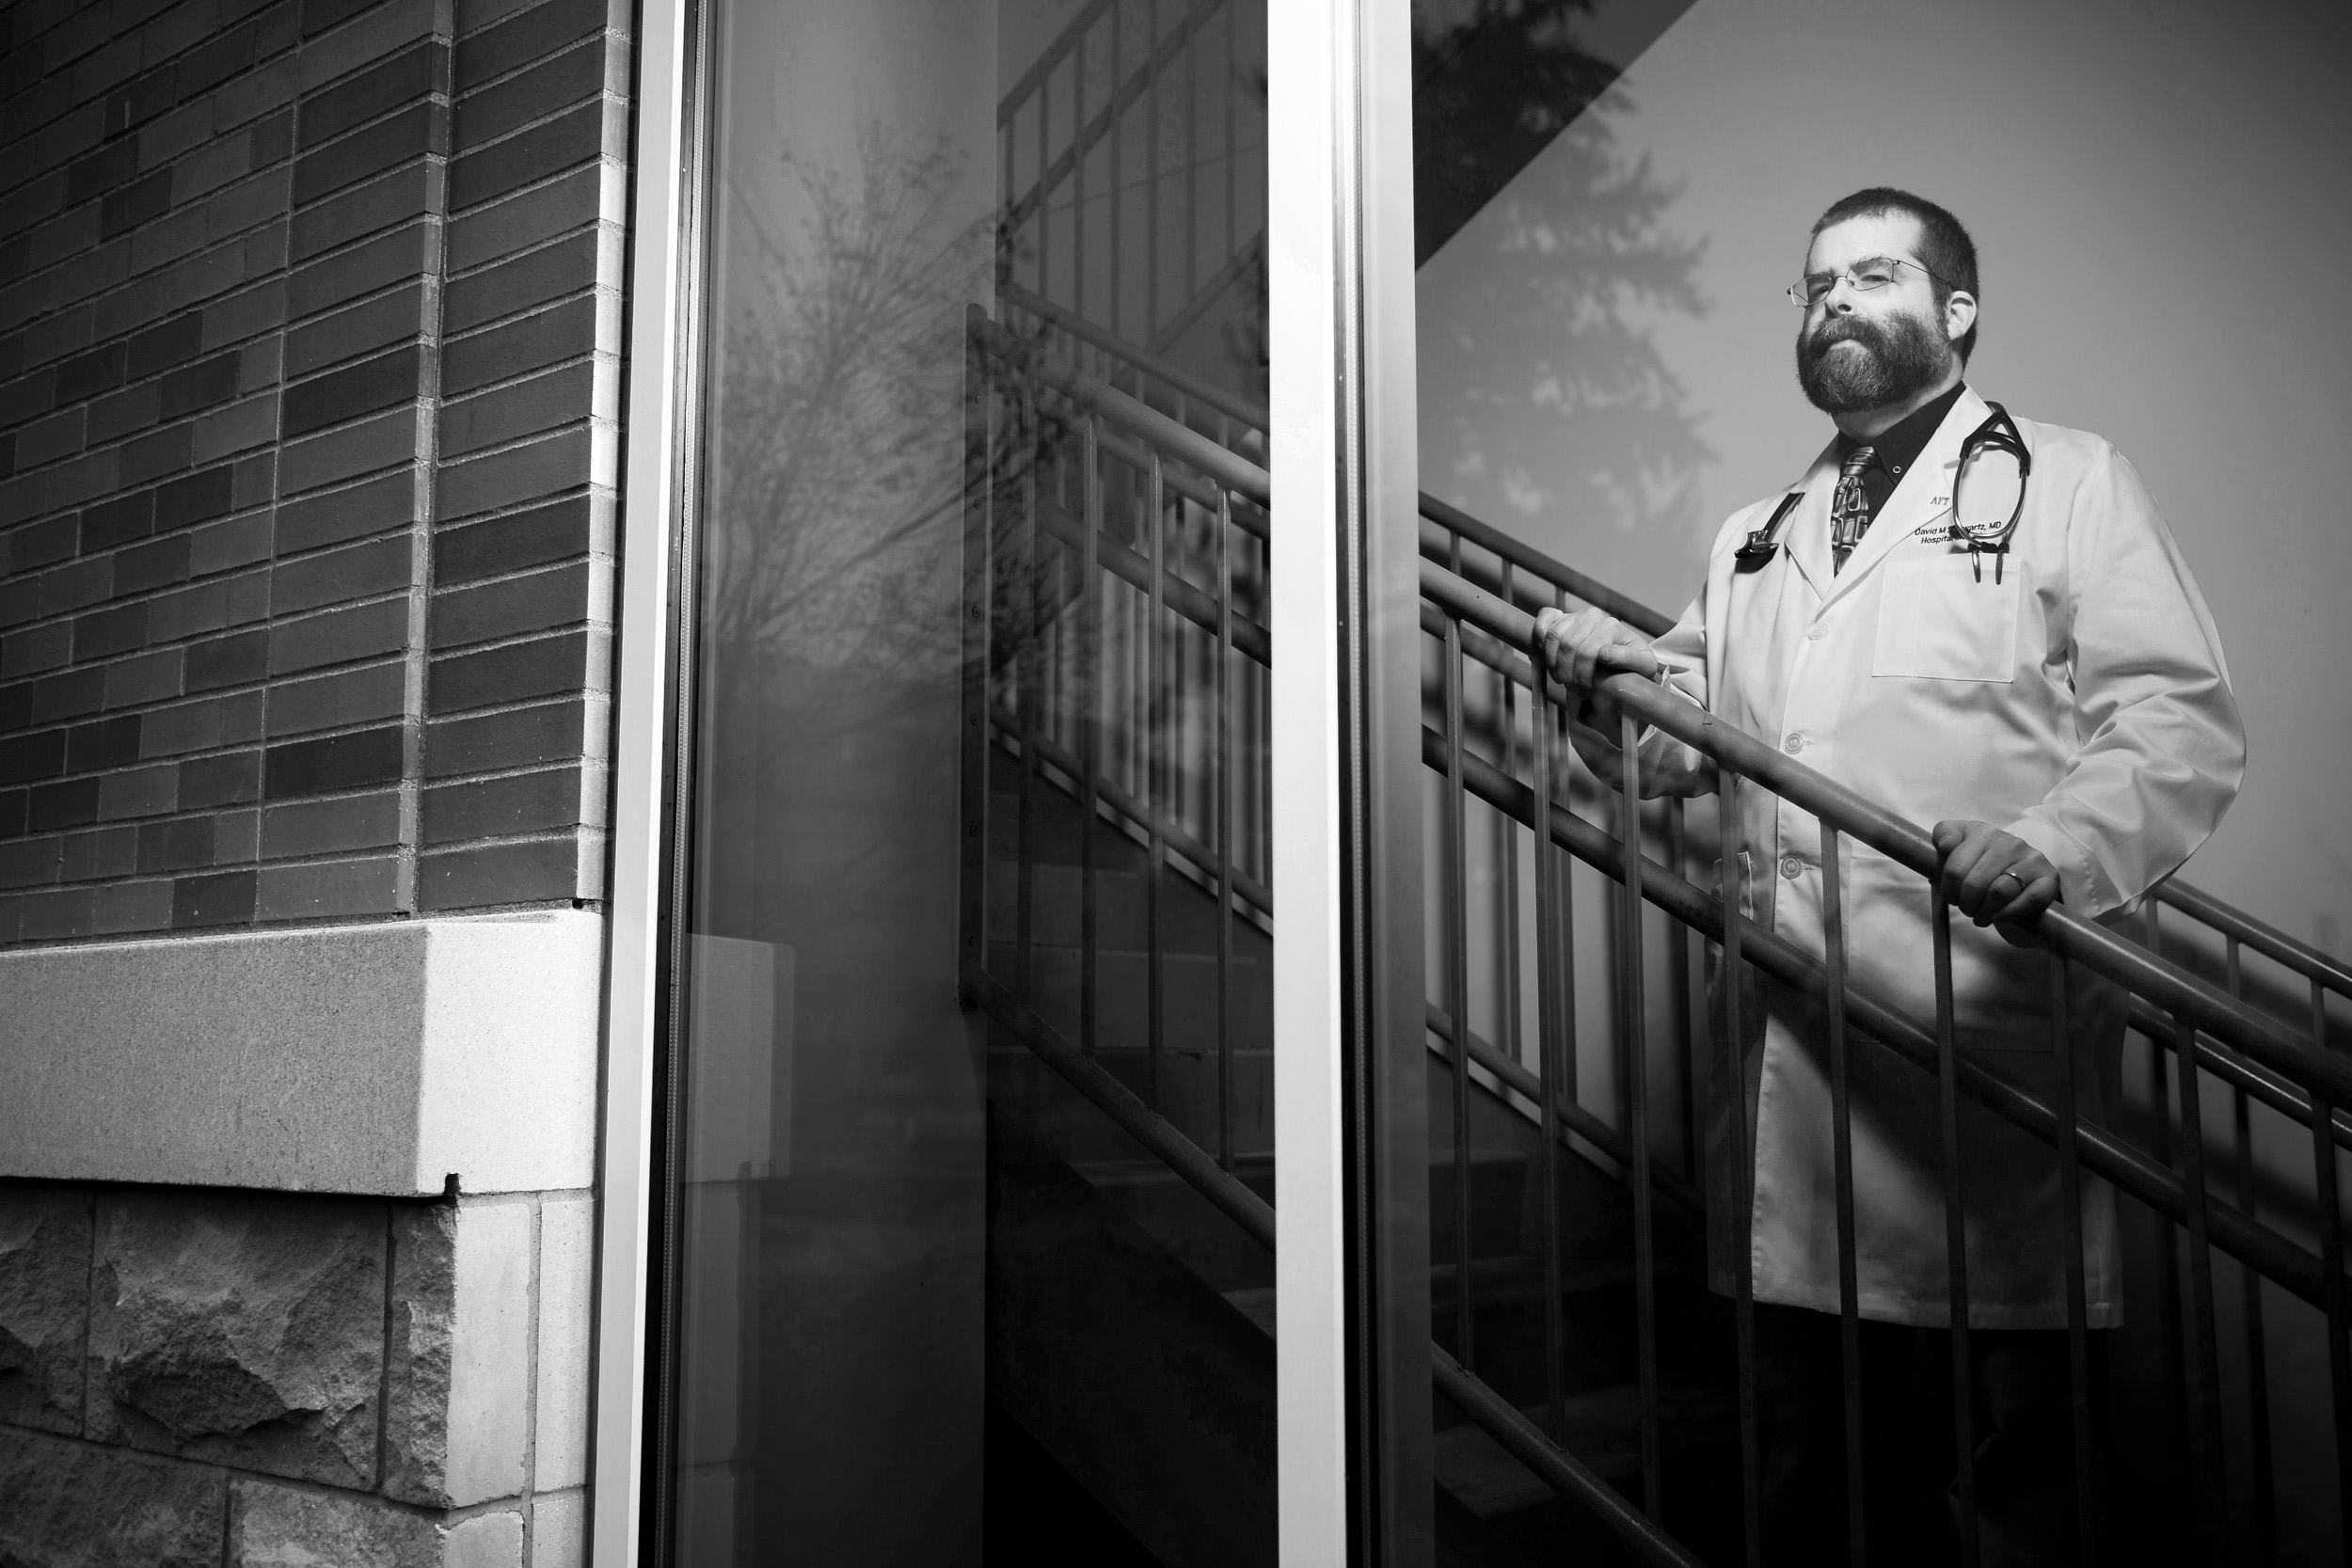 SPRINGFIELD, OR – JANUARY 6th, 2016: Dr. David M. Schwartz a hospitalist at PeaceHealth Sacred Heart Medical Center at RiverBend in Springfield, OR poses for a portrait at the hospital. Schwartz is the president of the union that was formed in reaction to the hospital's announcement that it wanted to outsource the facility's 36 hospitalists. As a result the administration junked their plan. CREDIT: Leah Nash for The New York Times